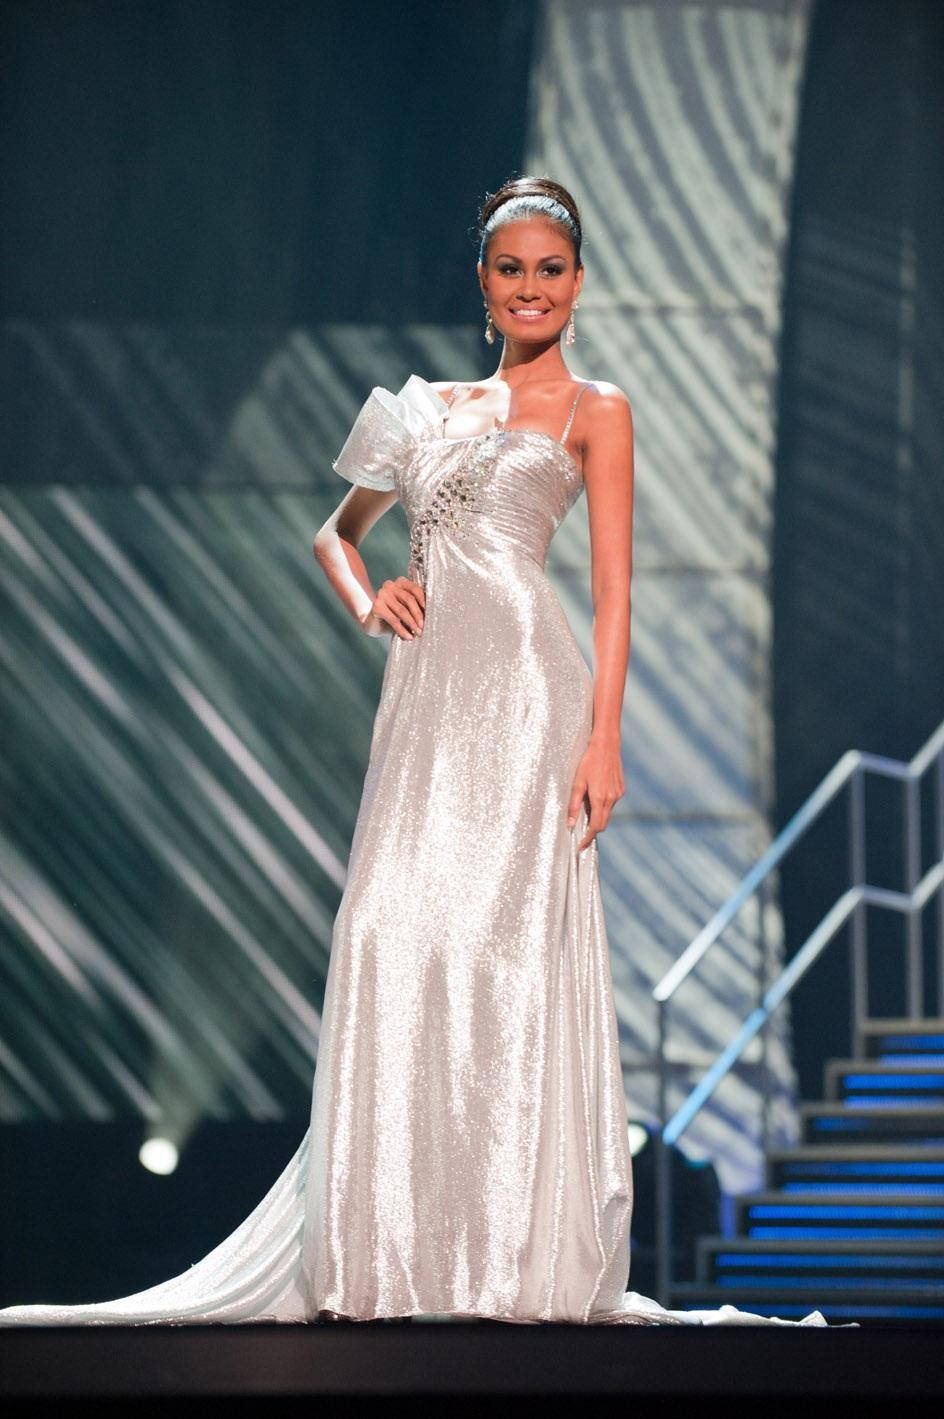 miss-philippines-venus-raj-in-the-evening-gown-portion-credits-to-yo-miss-universe-lp-lllp-578378011.jpg